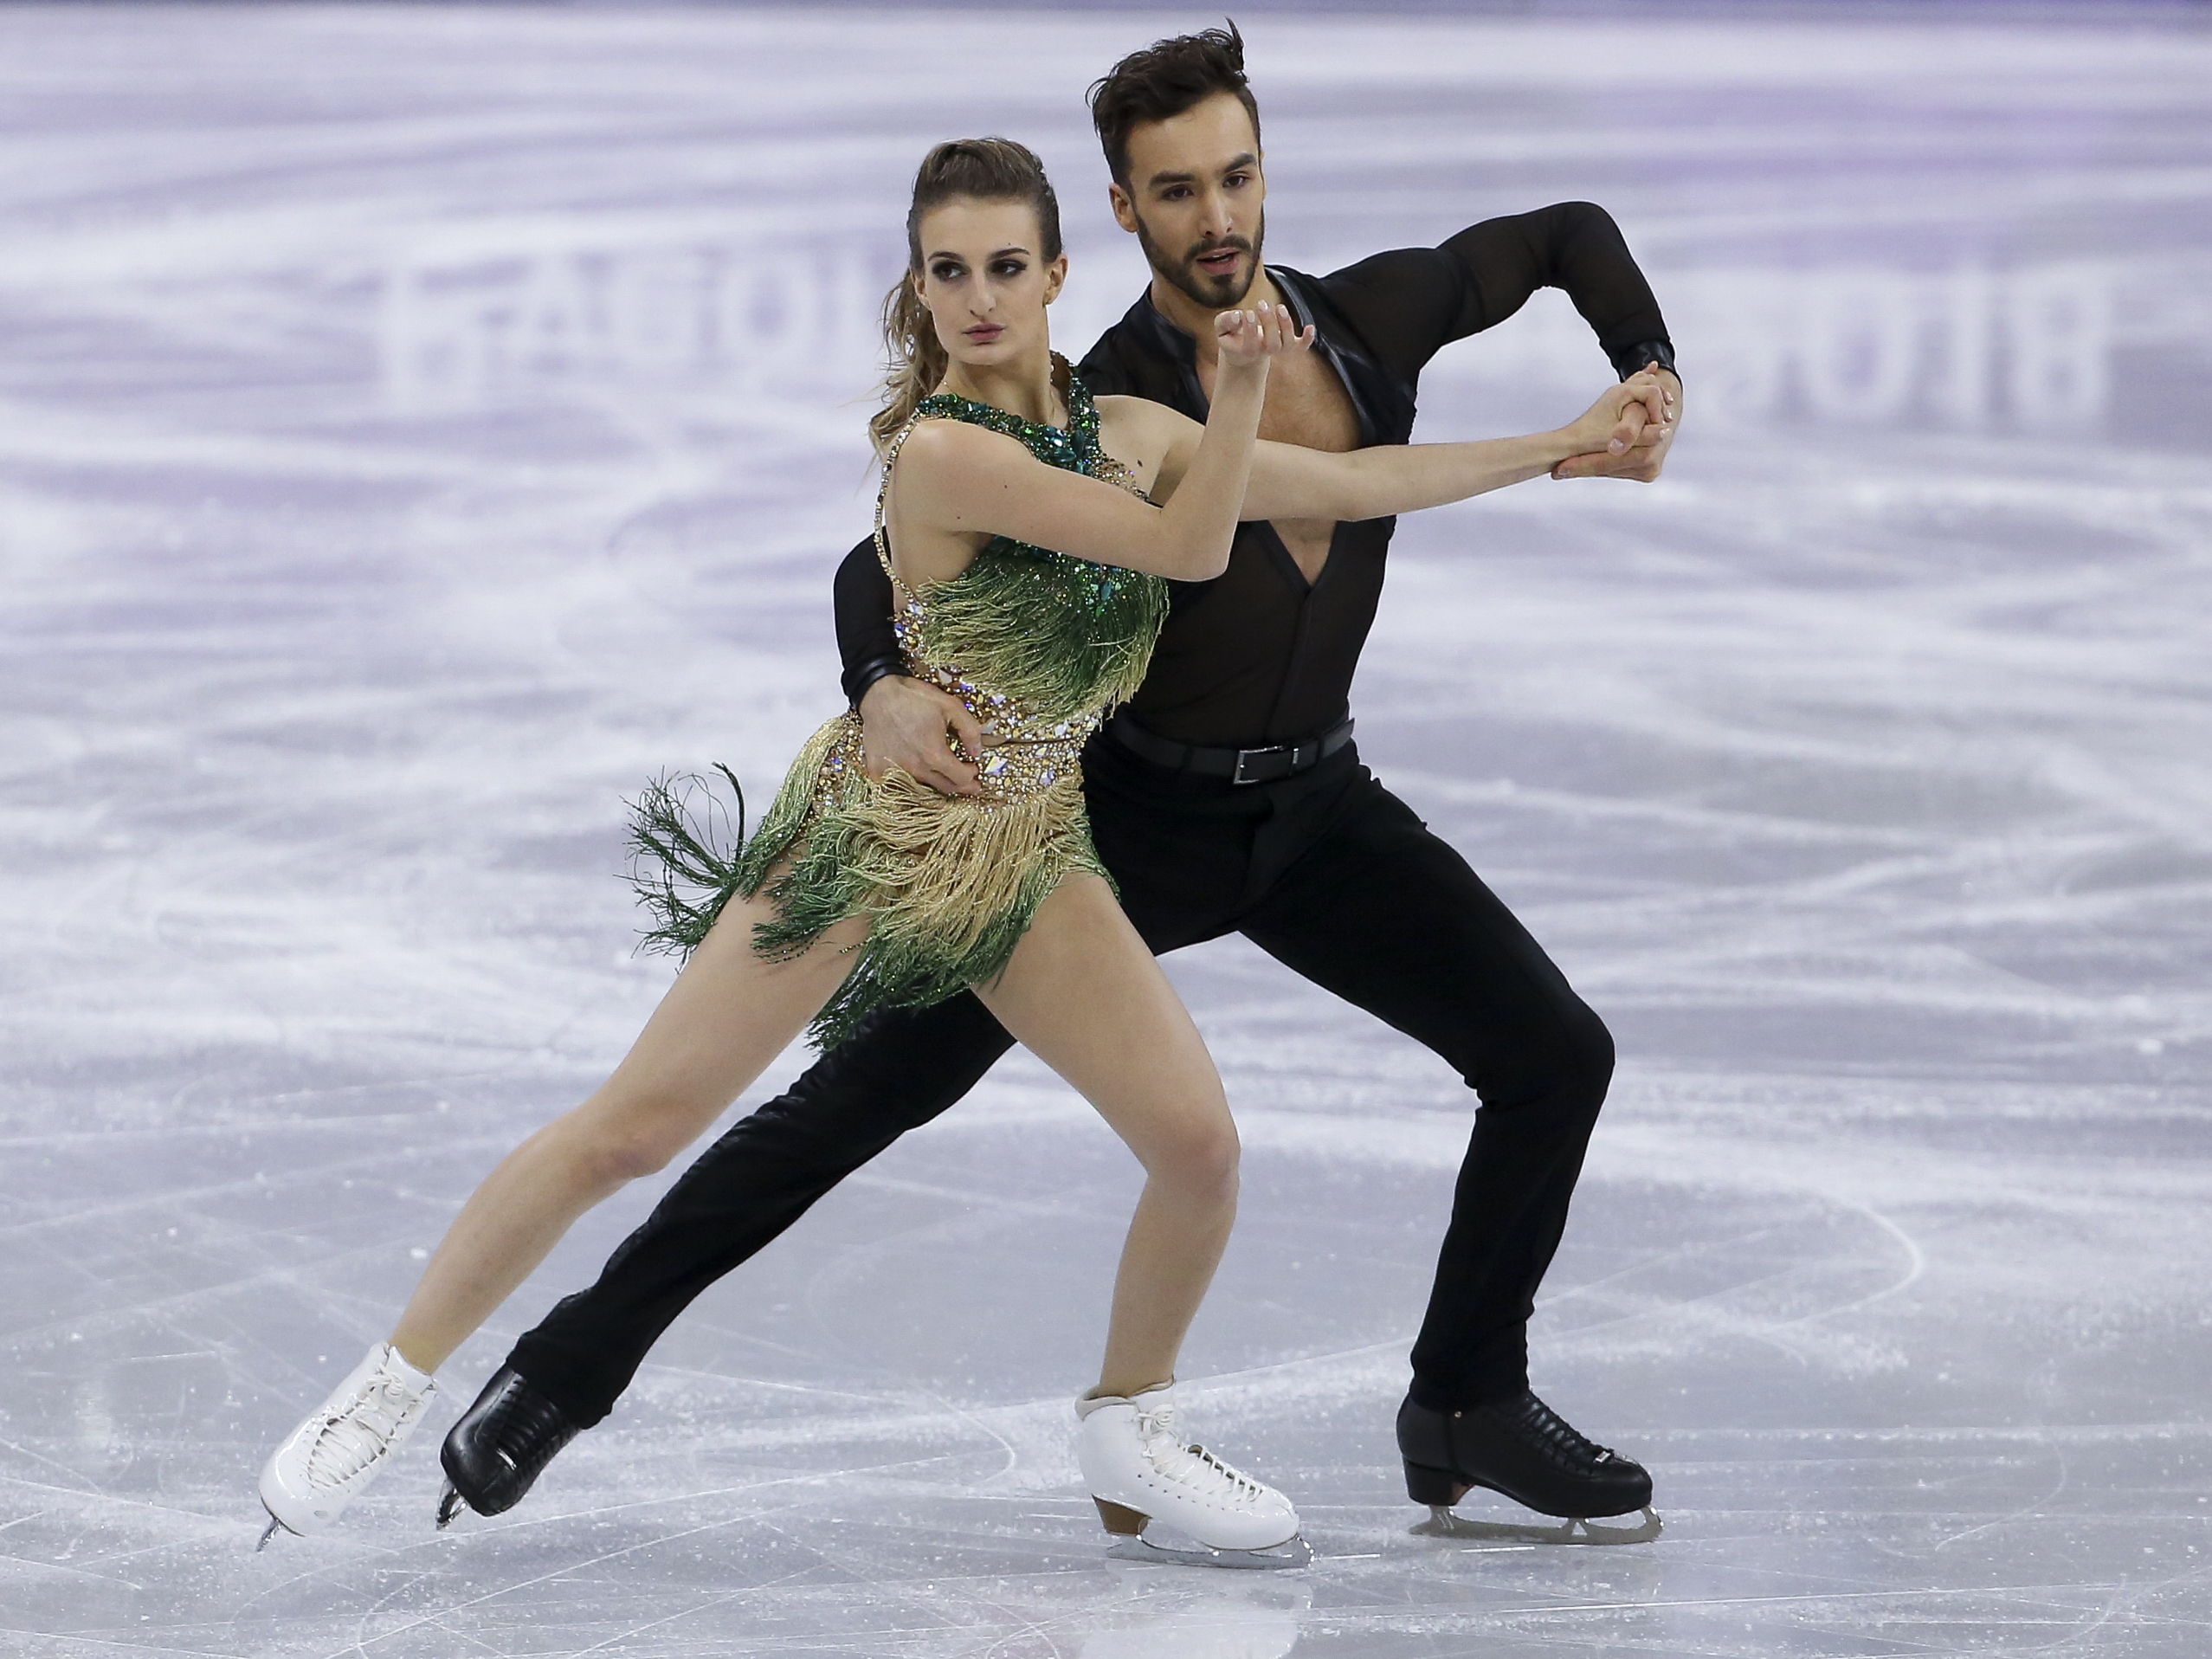 Ice Skater Wardrobe Malfunction Pictures photo 13